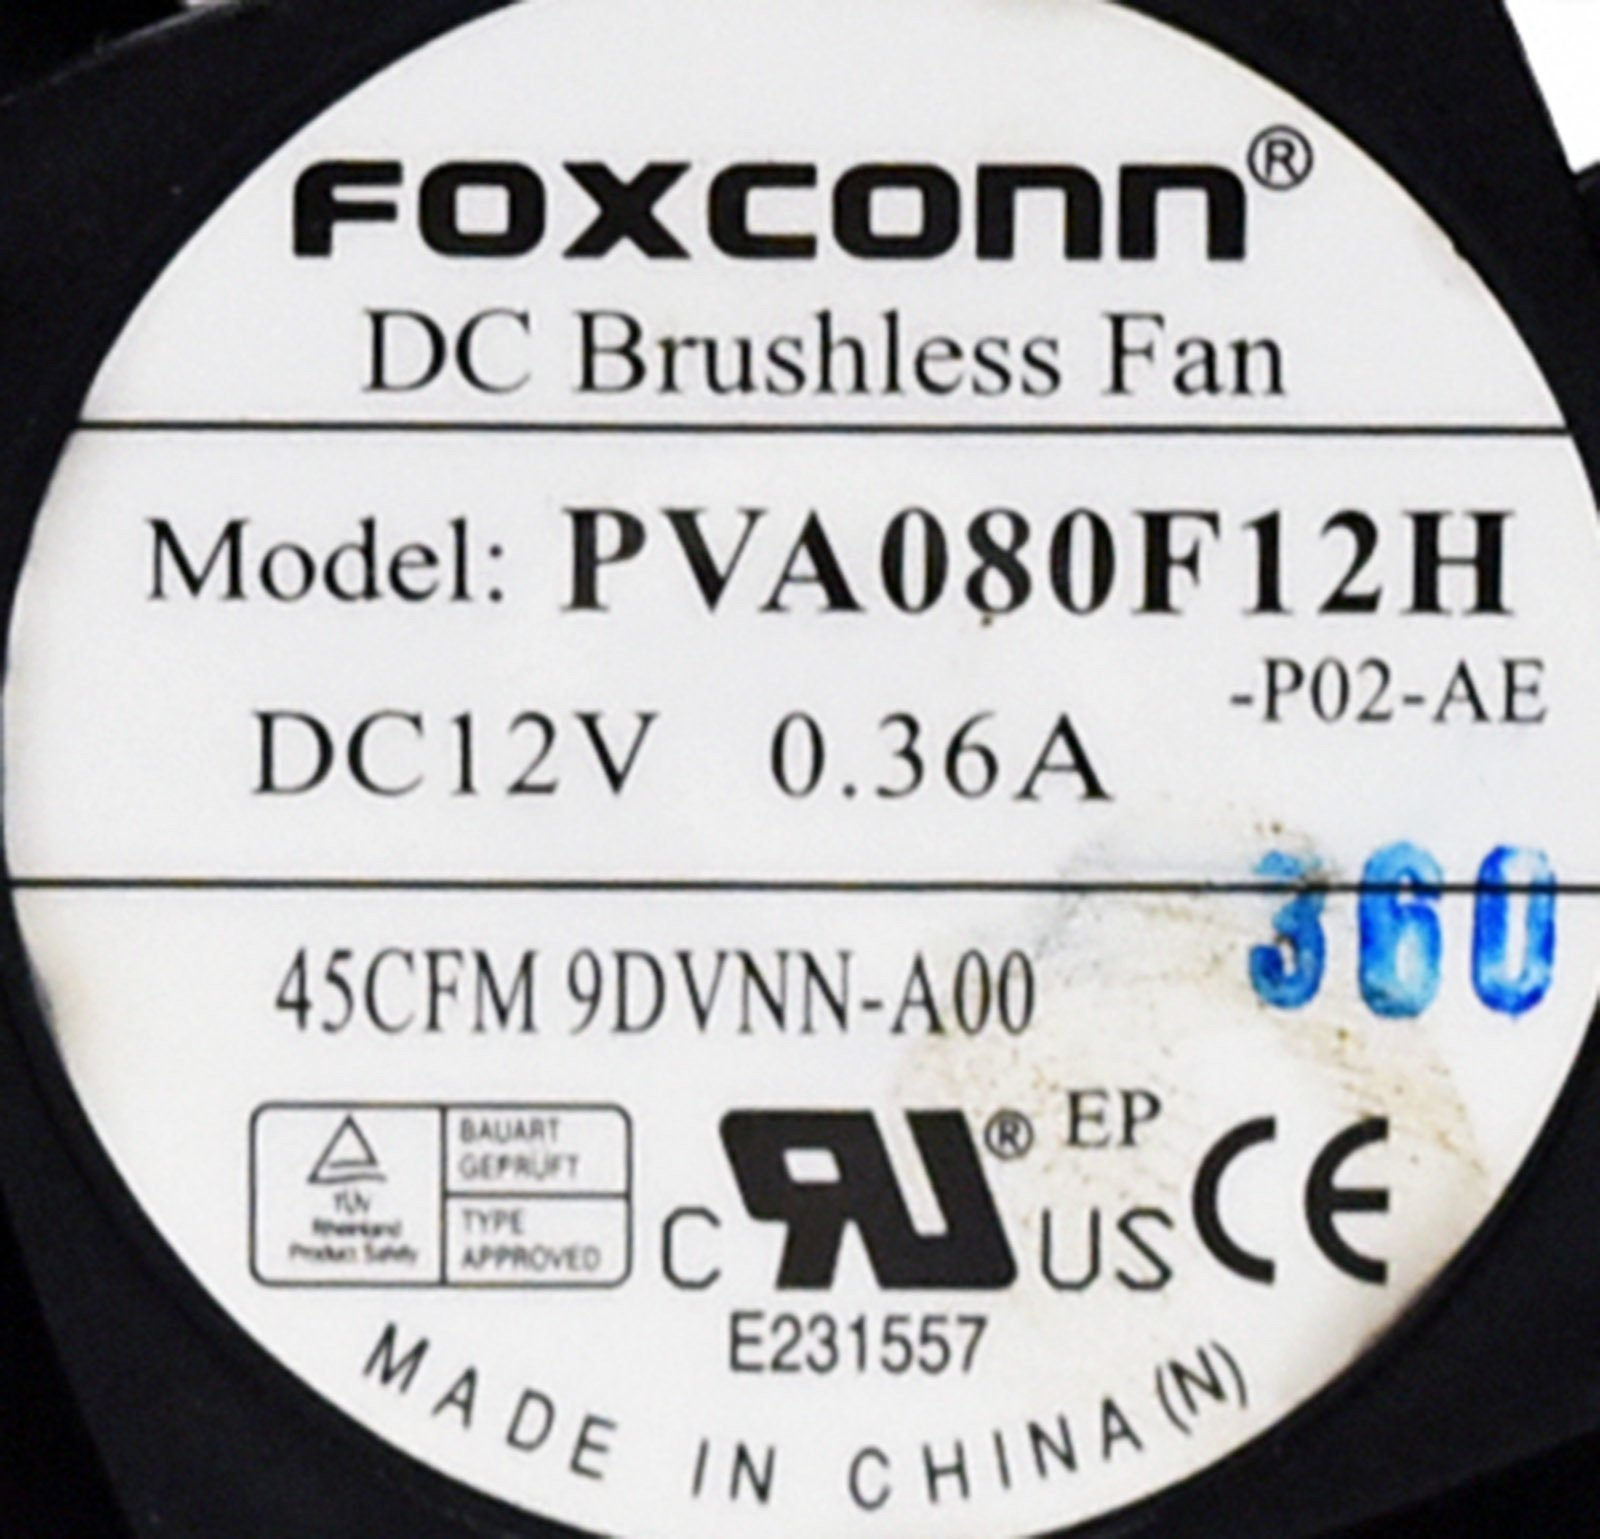 9DVNN Genuine OEM Rear Small Form Factor PC Computer Fan For Dell Optiplex 390 790 990 3010 7010 9010 4-Wire 5-Pin Power Connector Foxconn AVC Sunon Rev:A00 by Aquamoon Trading (Image #4)